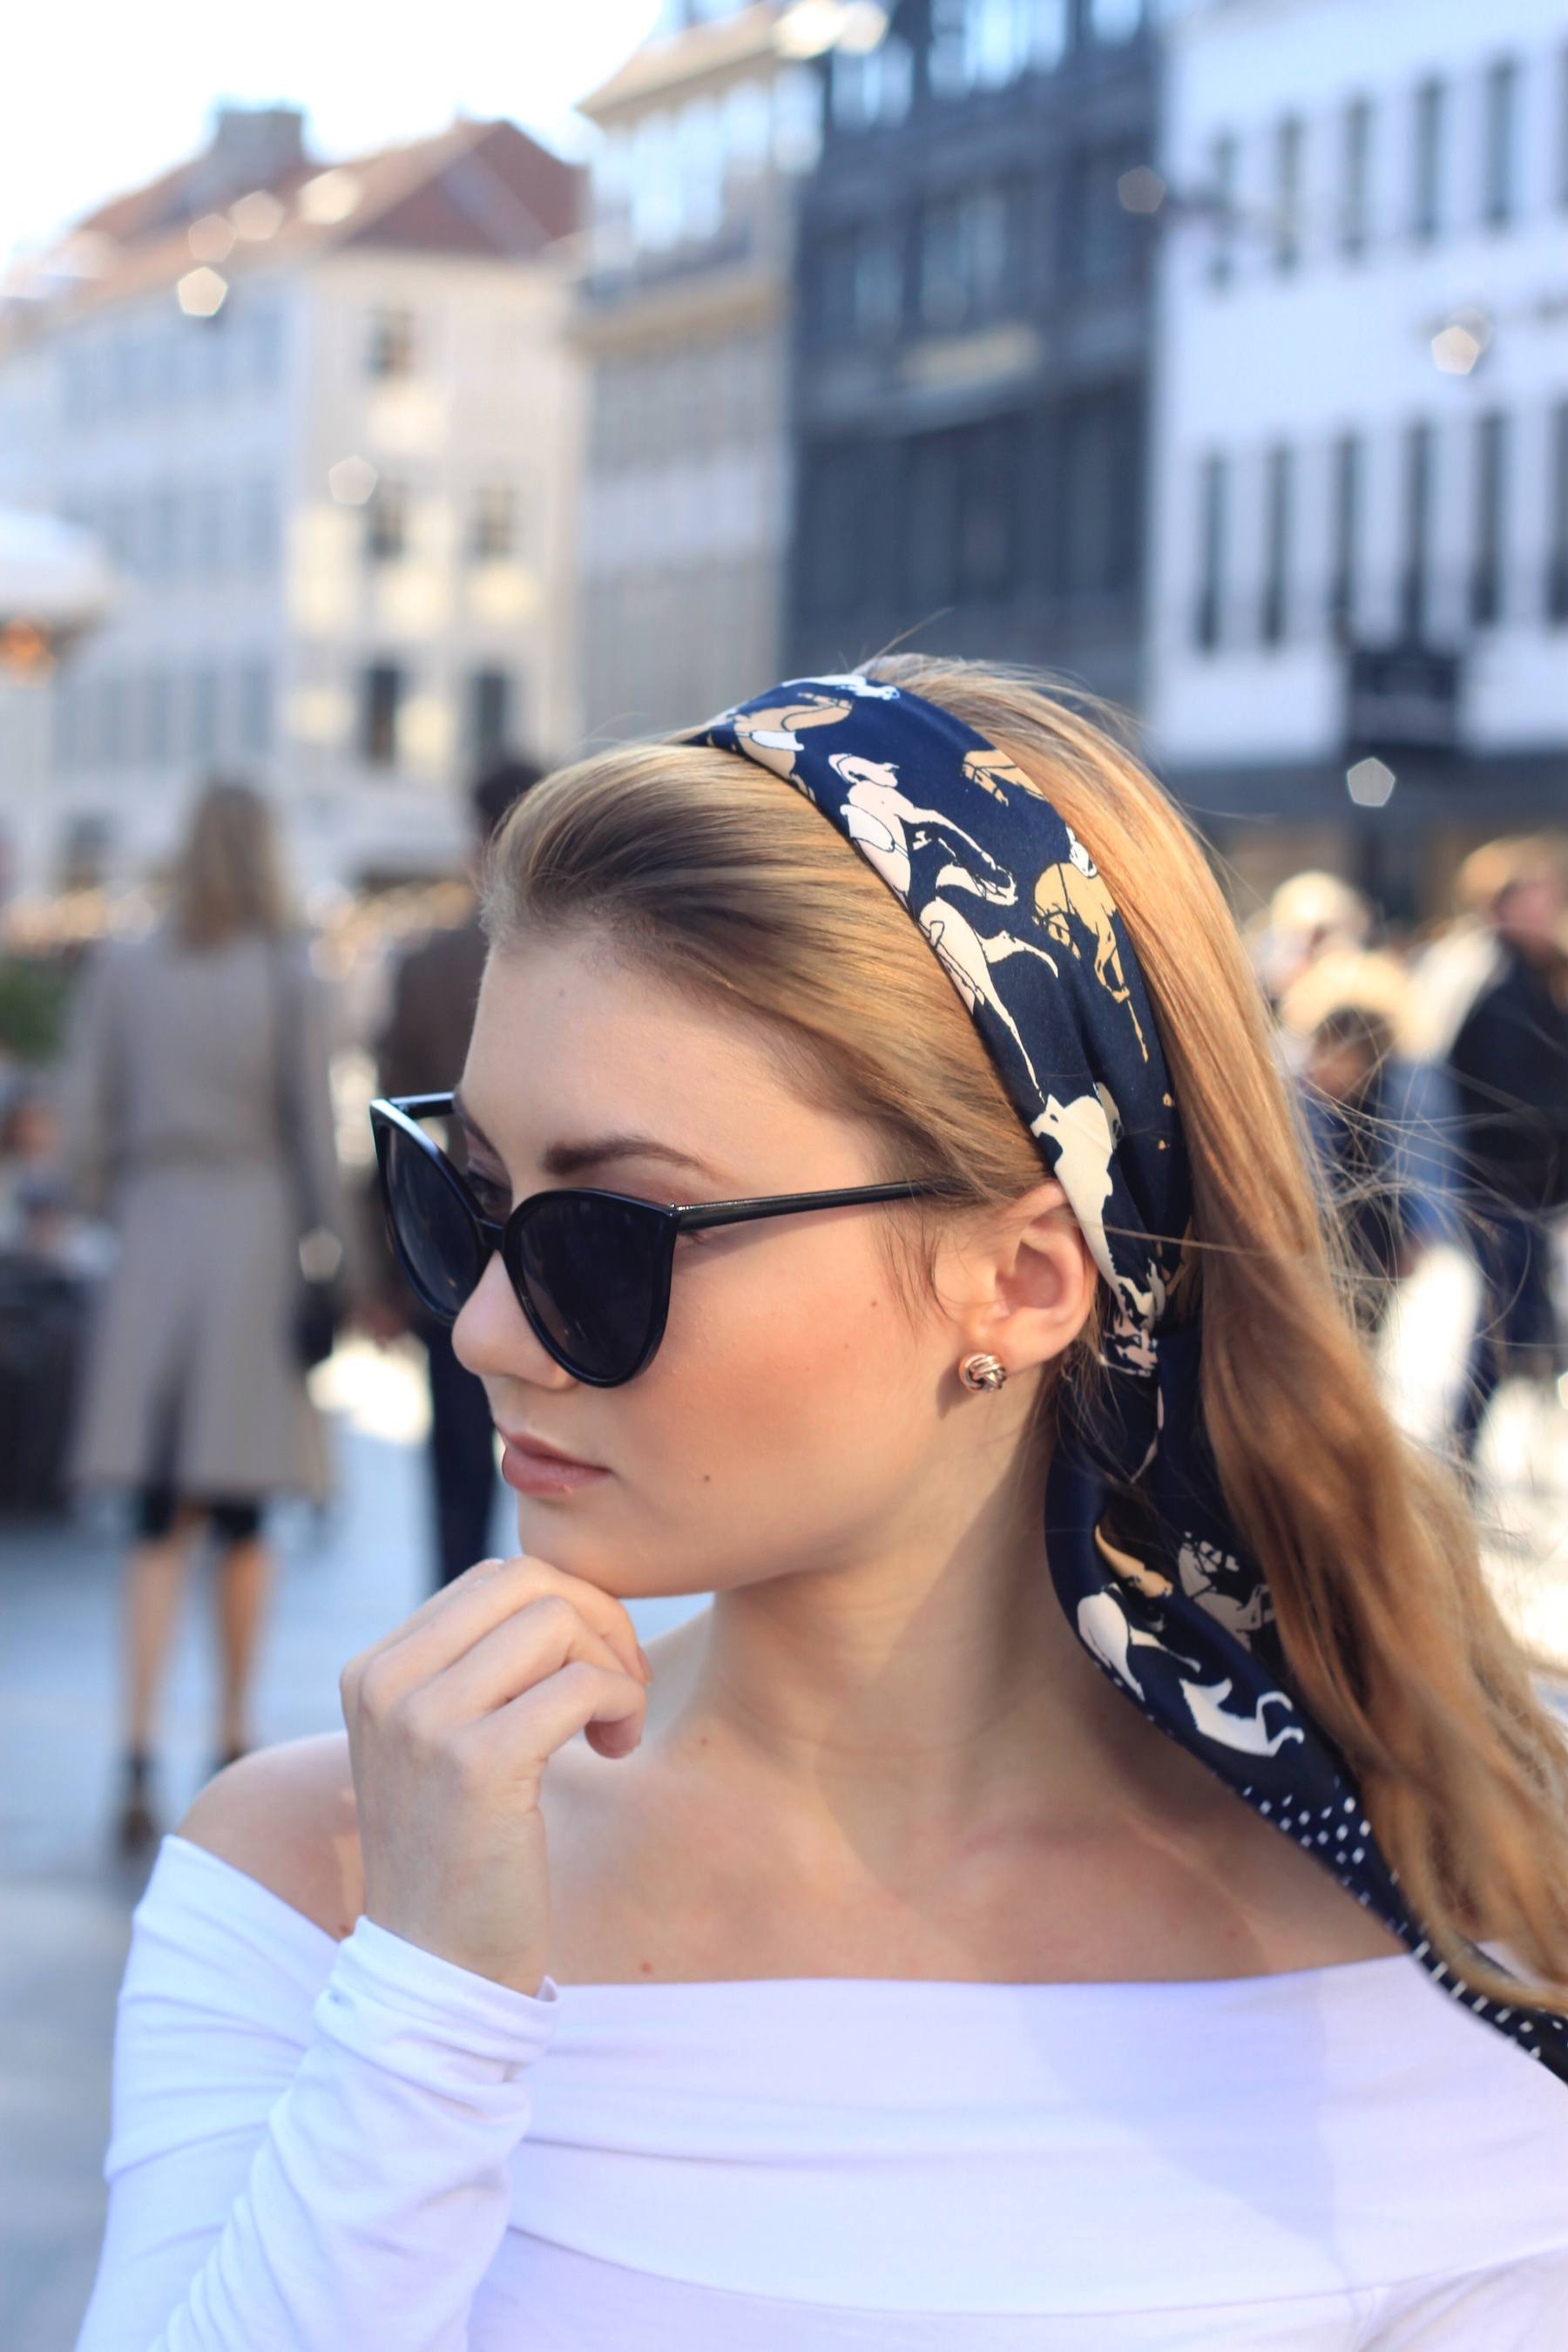 Juliana Chow Fashion Blog Outfit Lifestyle Copenhagen Audrey Hepburn Instagram Outfit of The Day Model 13